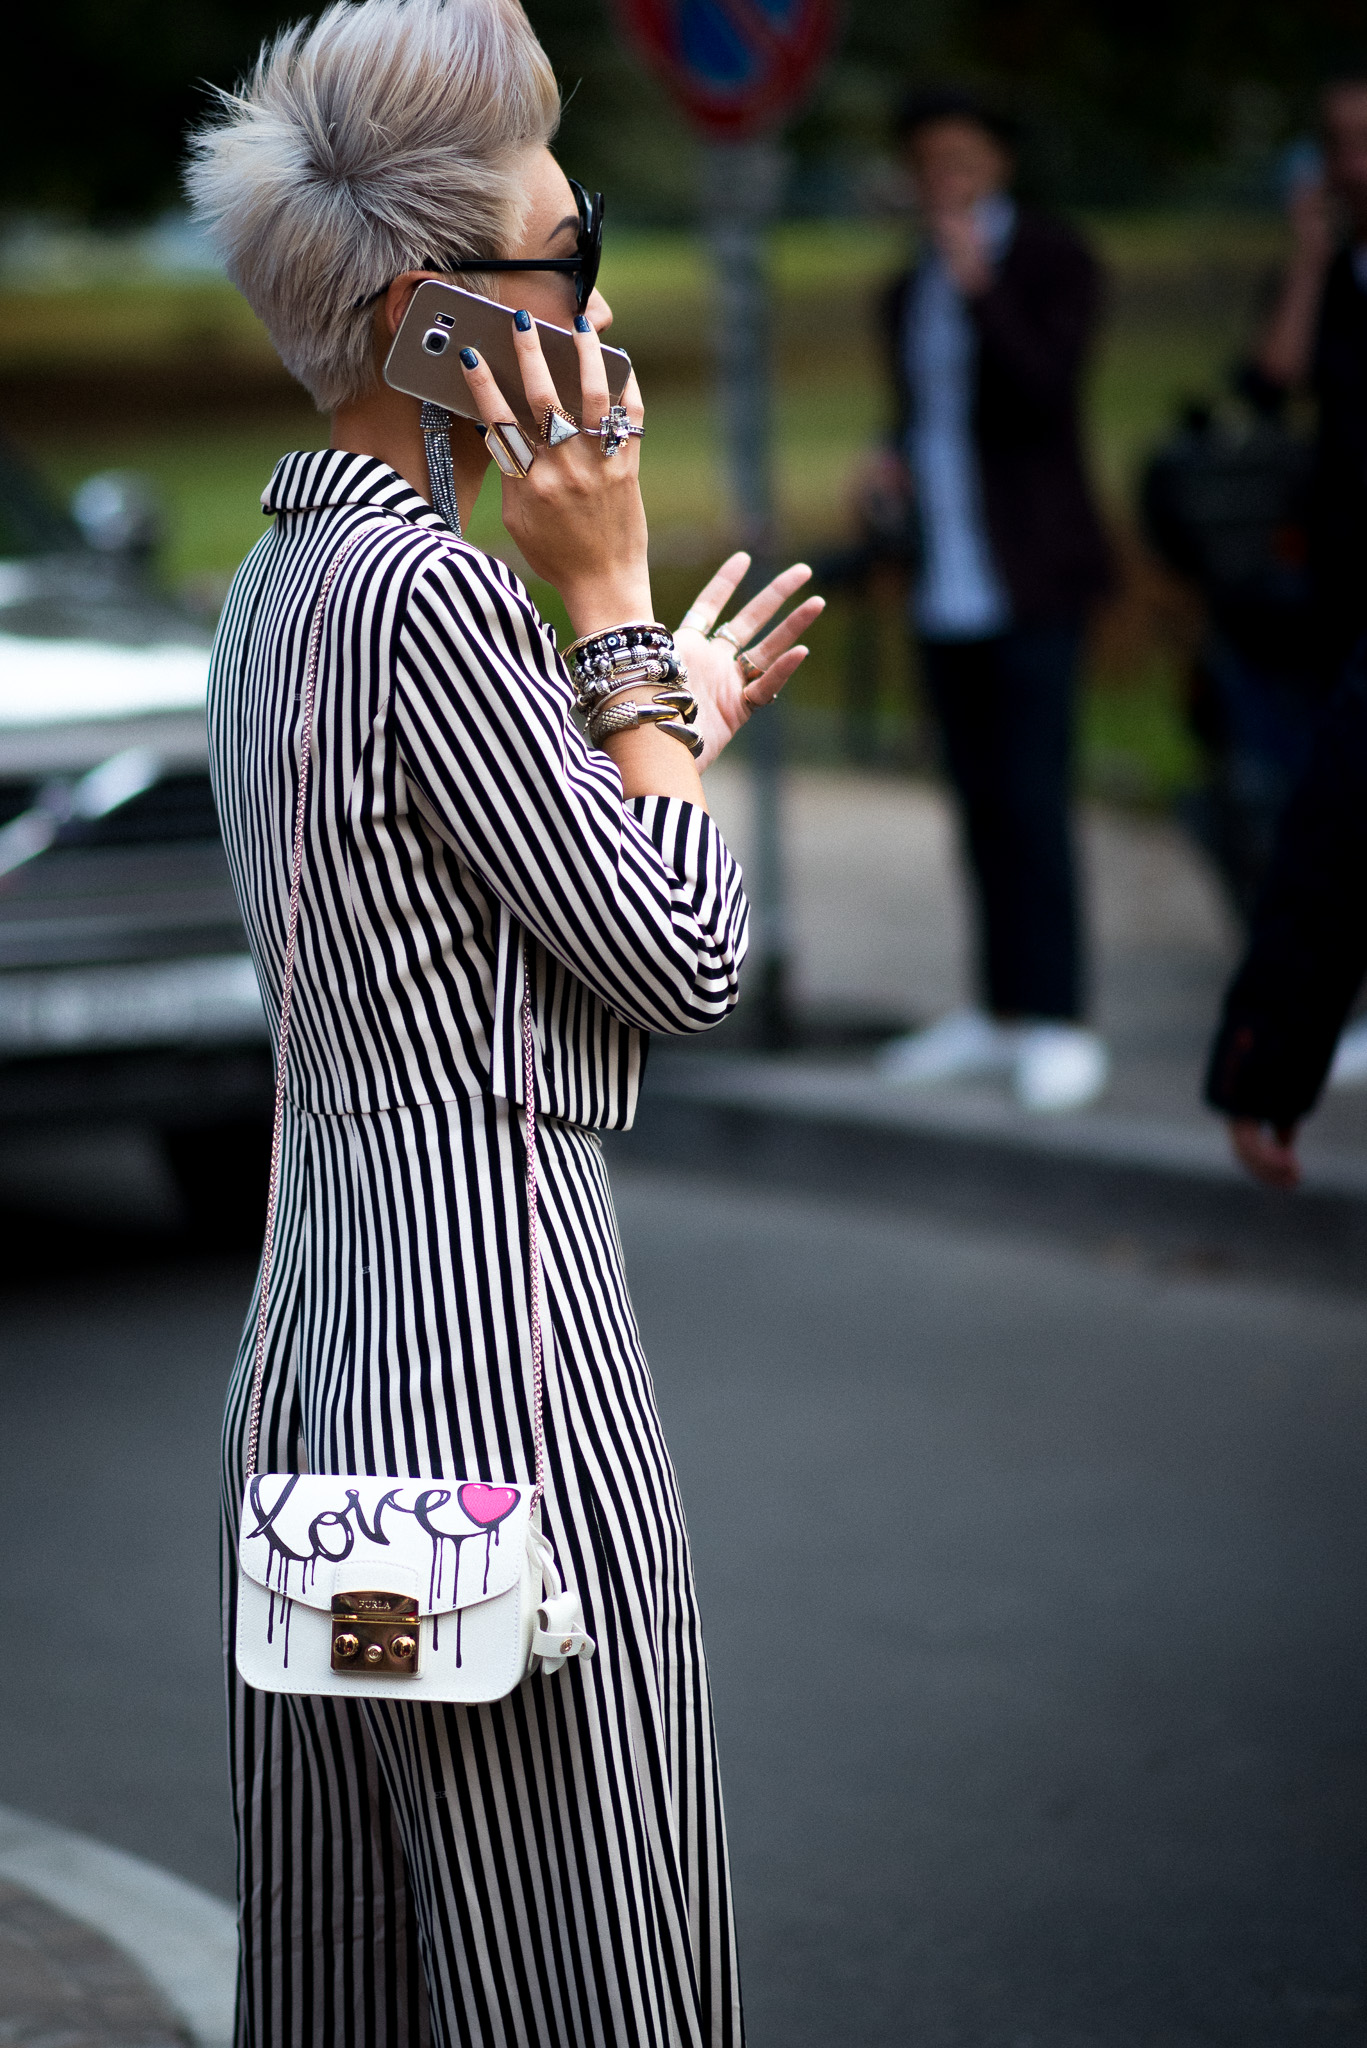 esther-quek_emilio-pucci_milan-fashion-week_sept-2016_photography-annika-lagerqvist_www-annikasomething-com-1